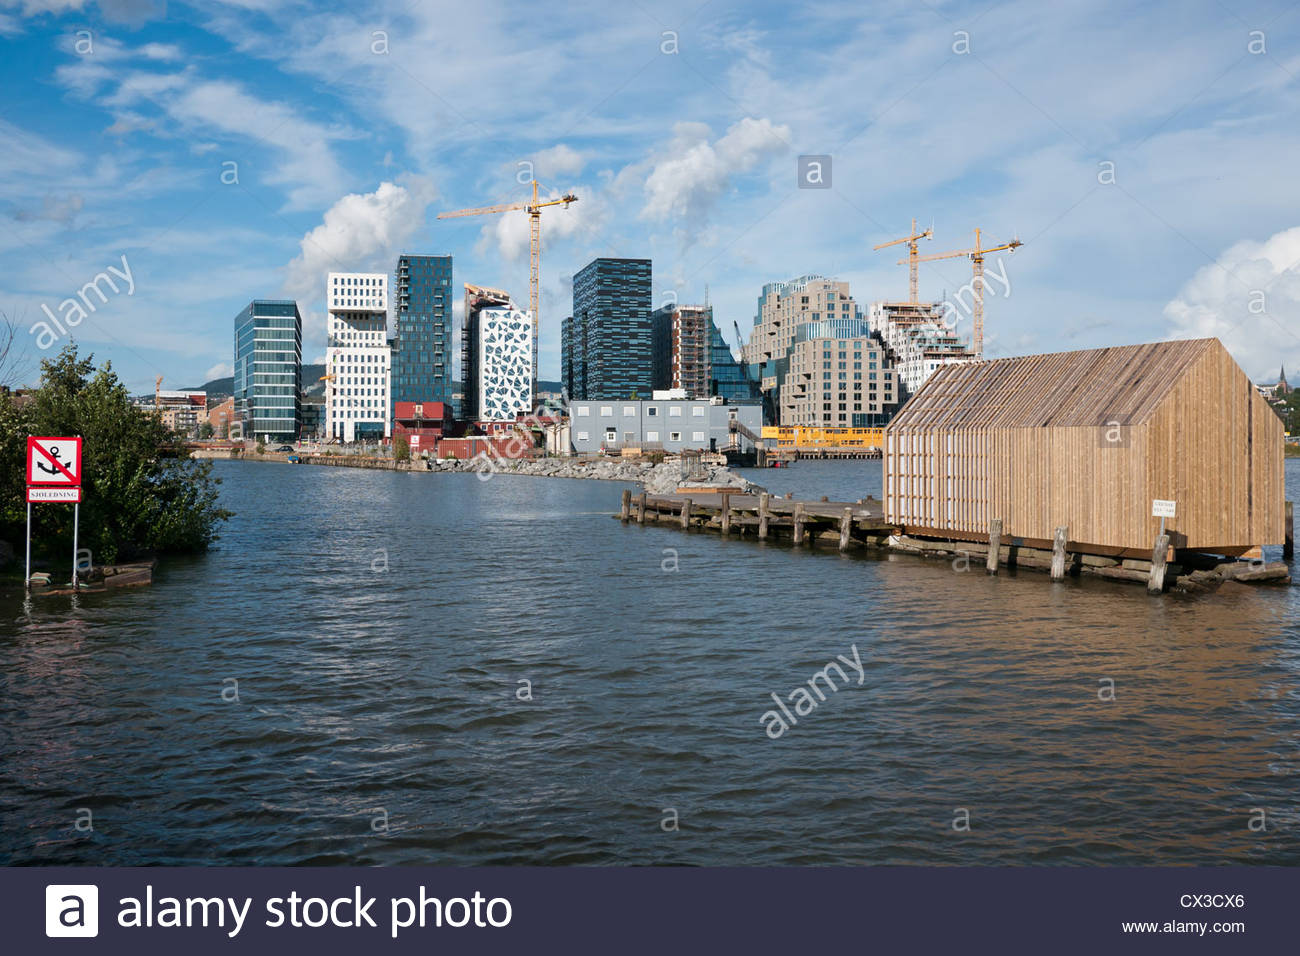 Barcode Project construction - part of the Bjørvika, Fjordcity regeneration of the Oslo waterfront. - Stock Image